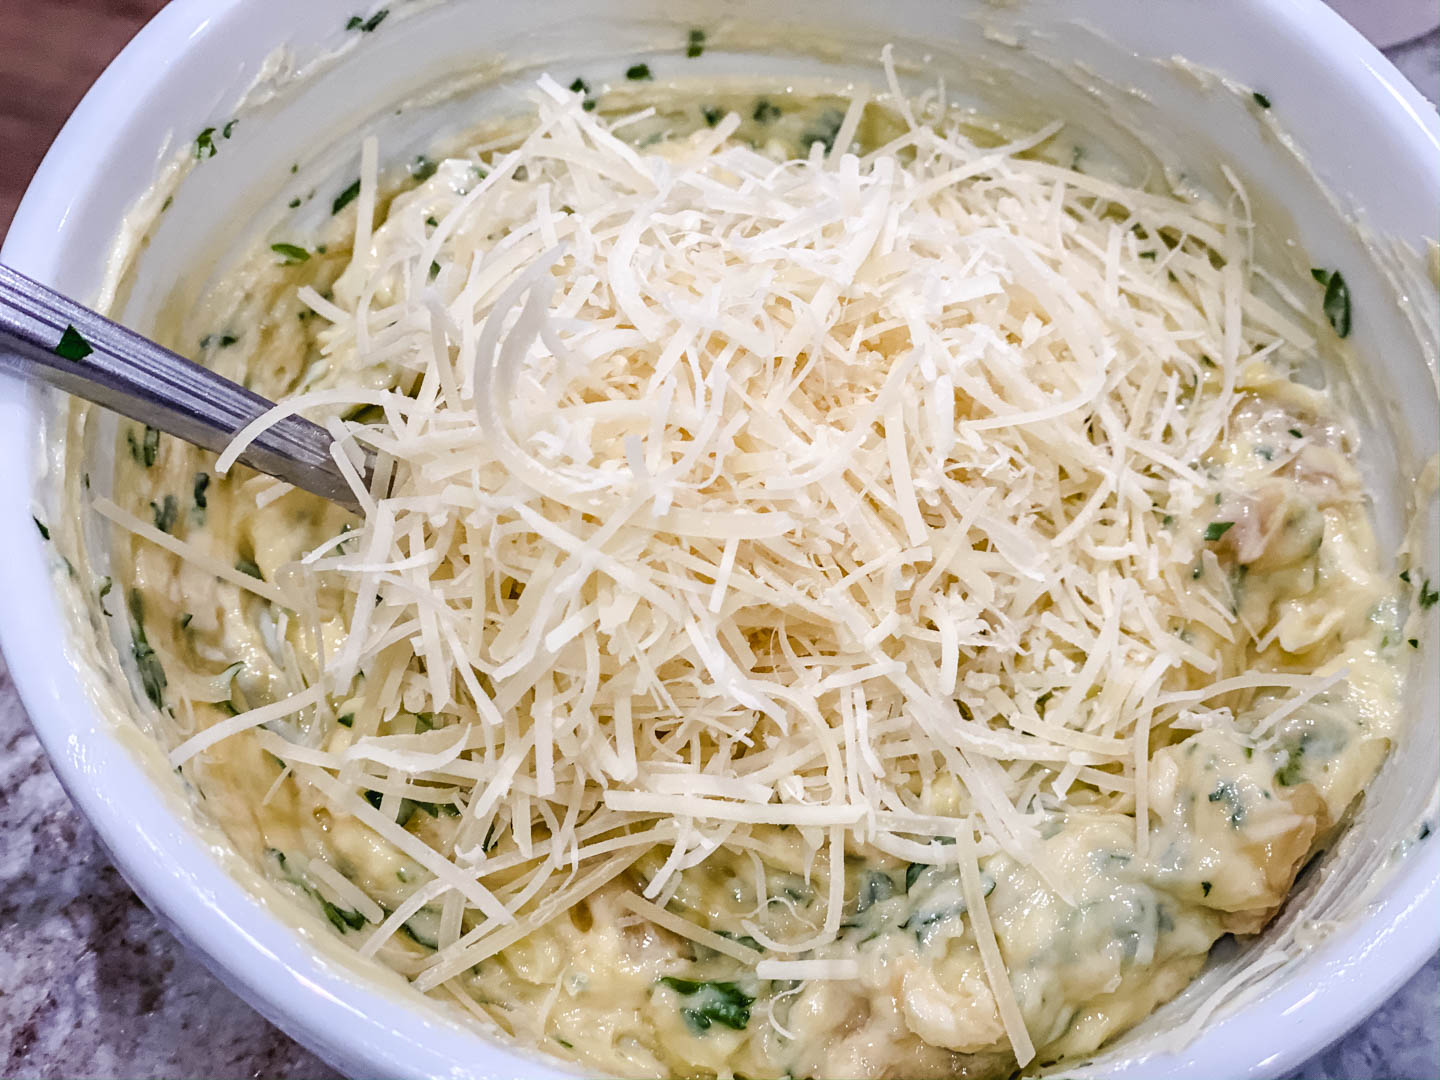 Butter, mayo. parsley, roasted garlic in a white bowl with parmesan cheese on top.